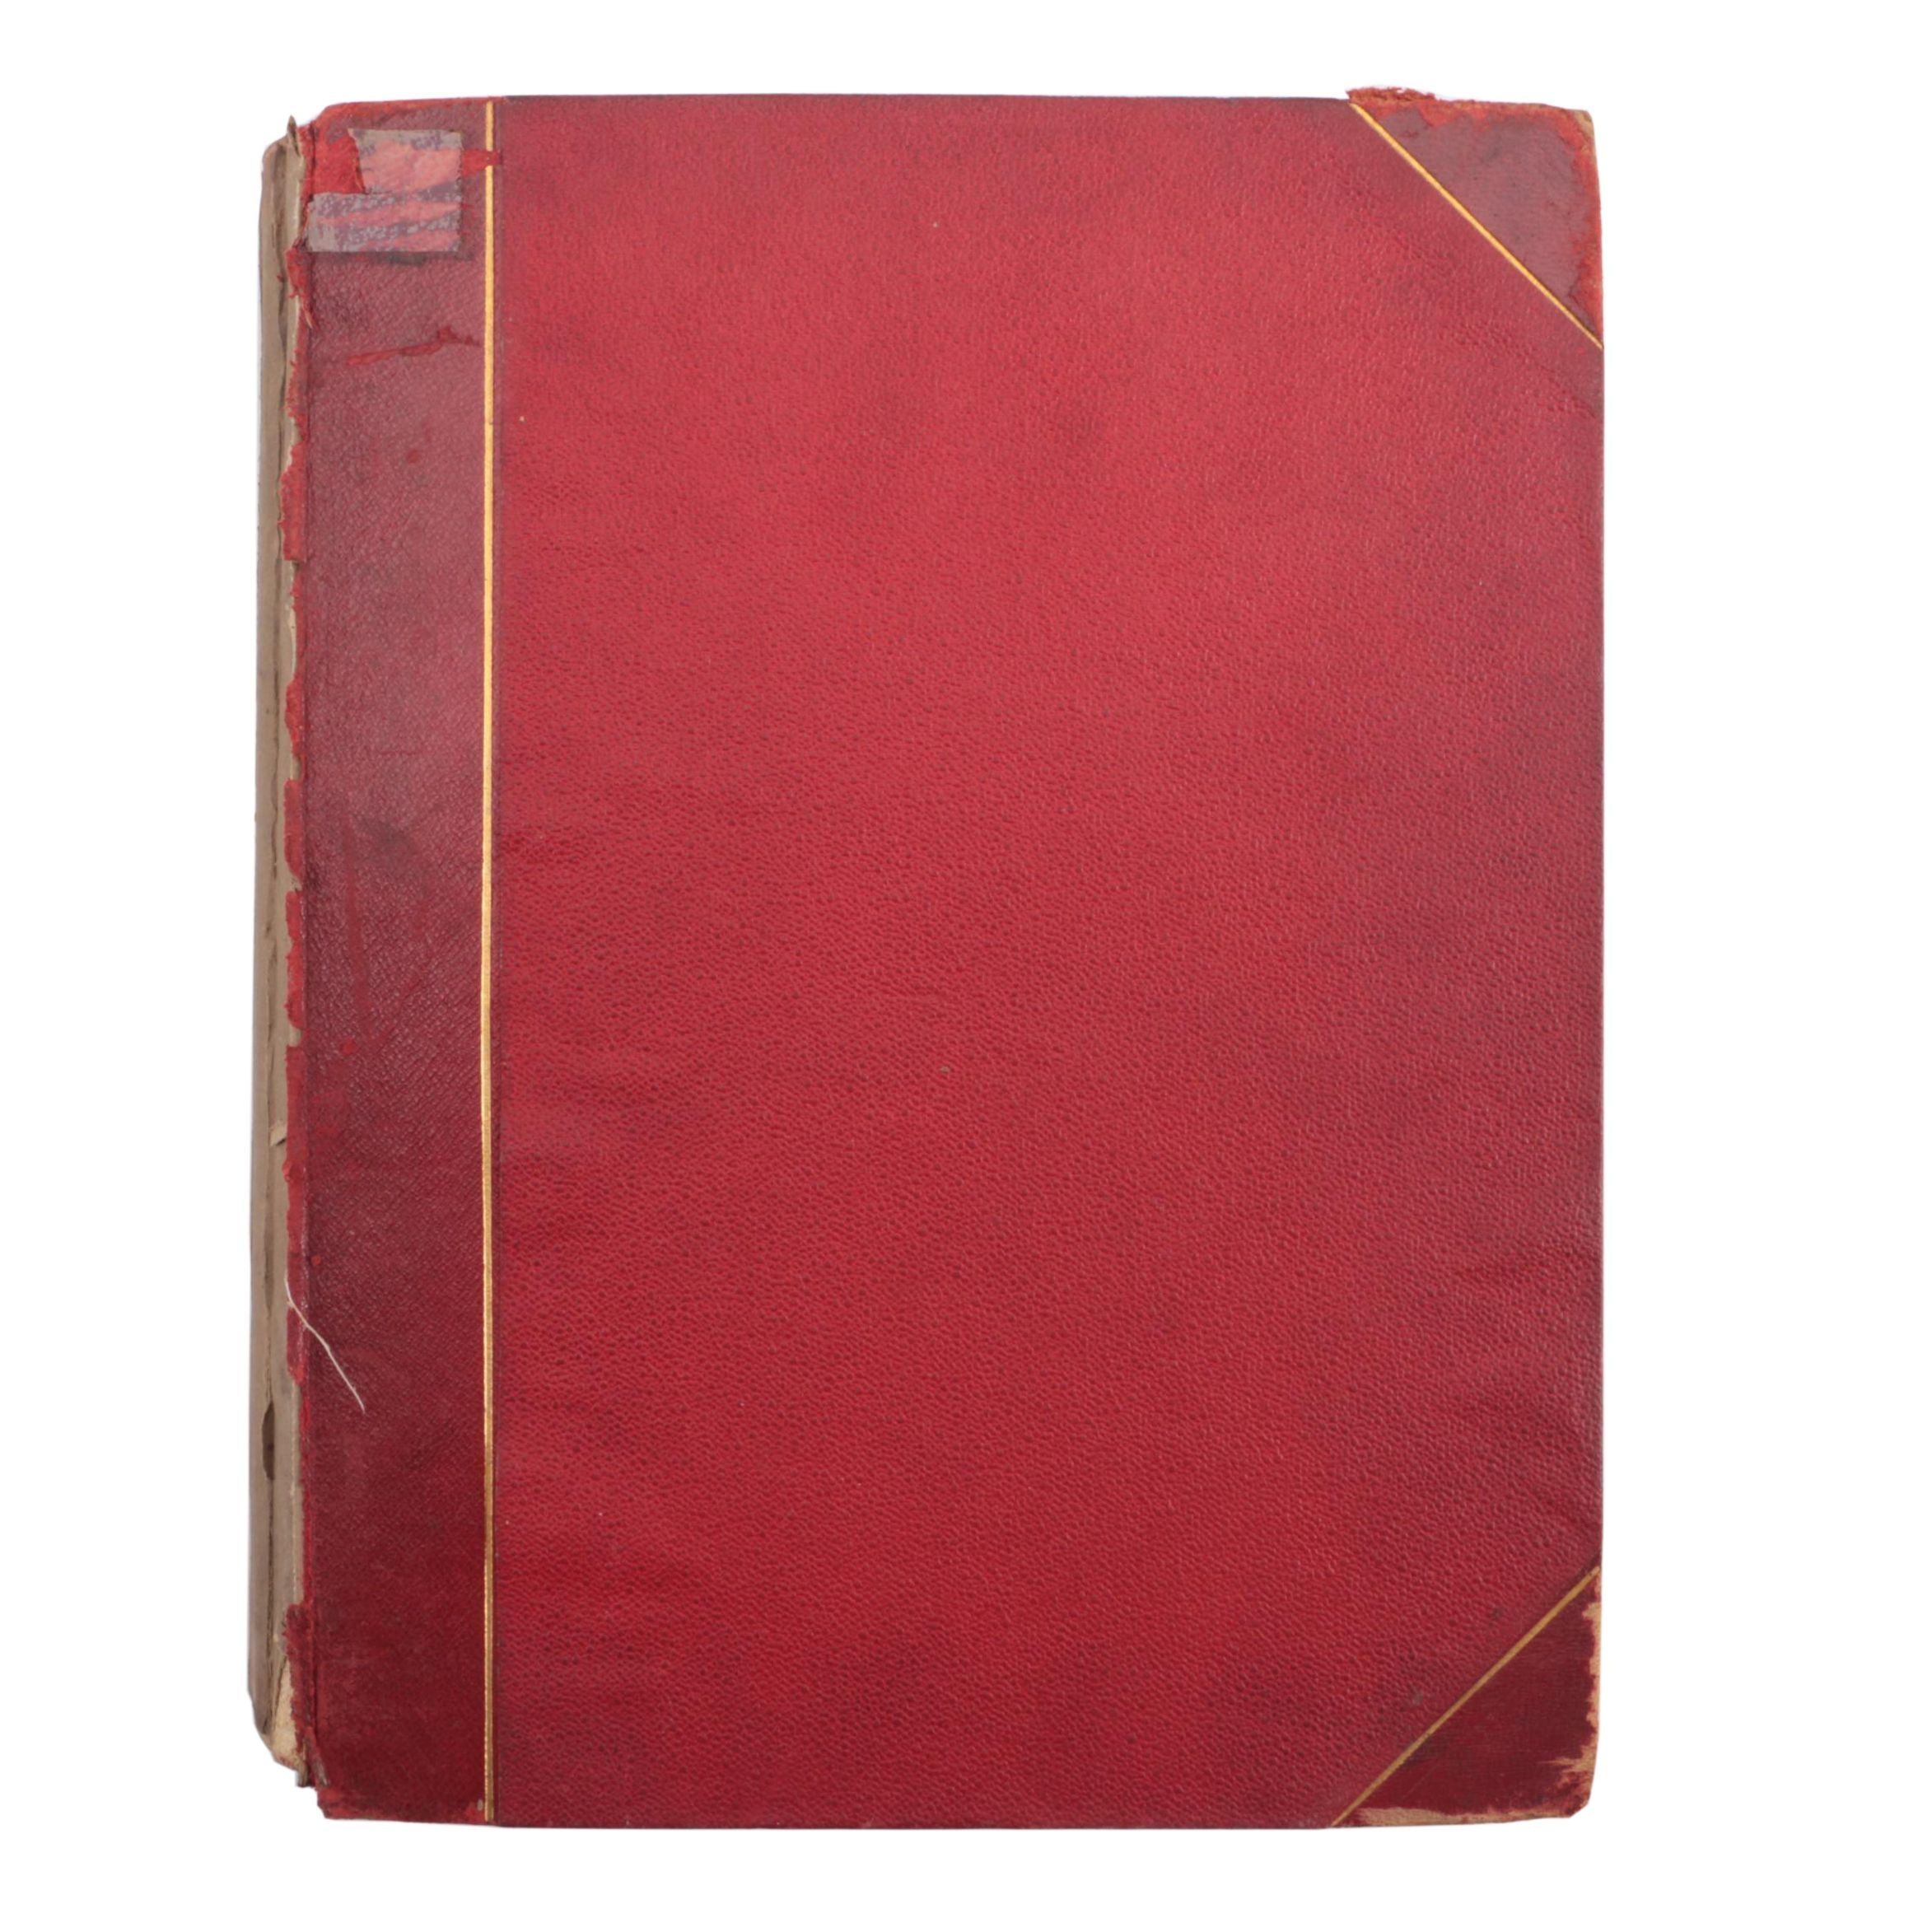 "1891 ""Historical Record of Medals and Honorary Distinctions"" by George Tancred"